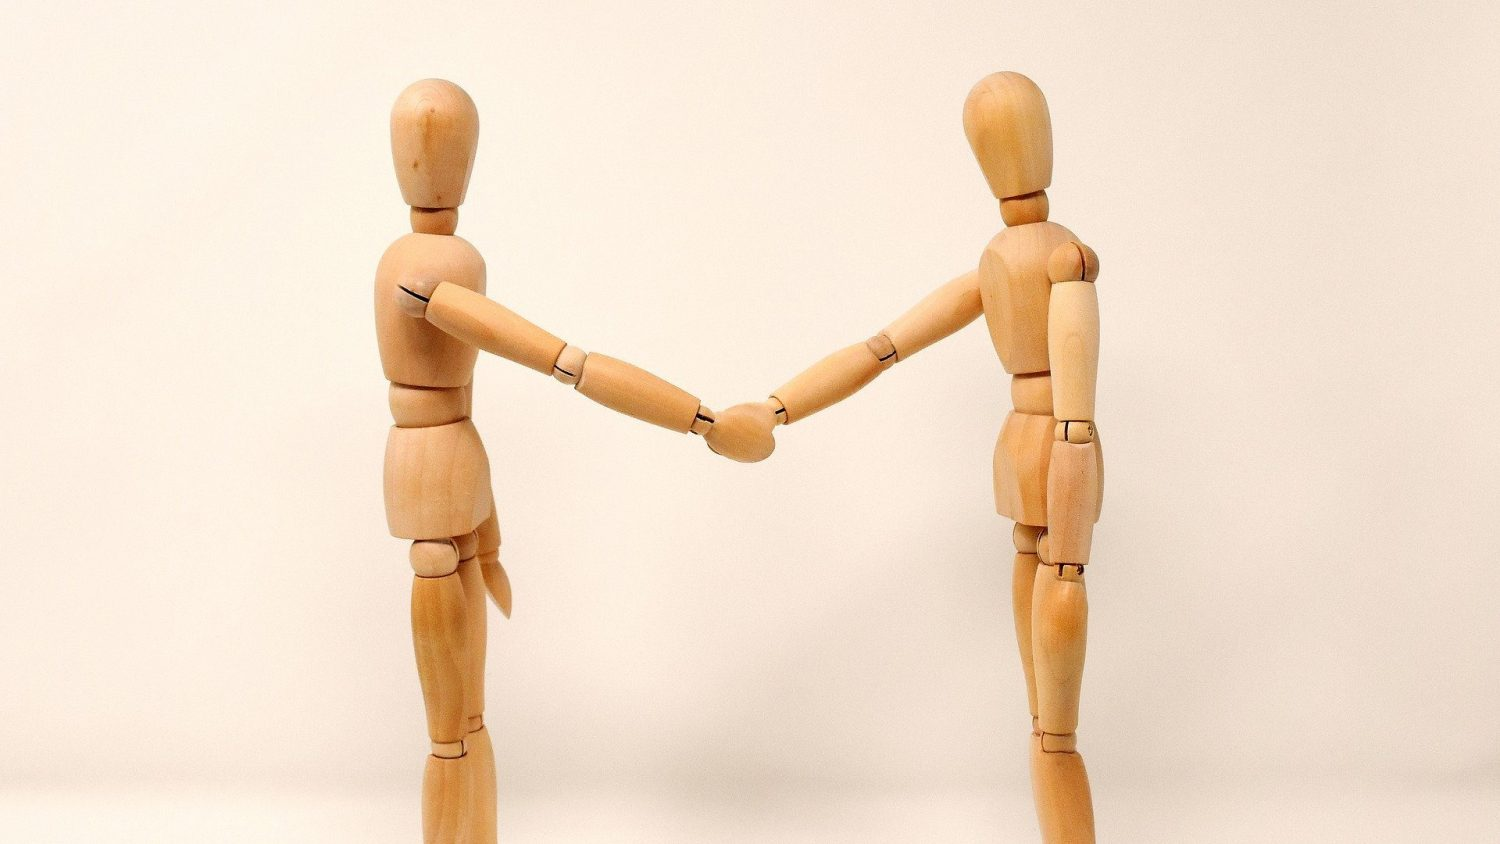 Wooden statues holding hands